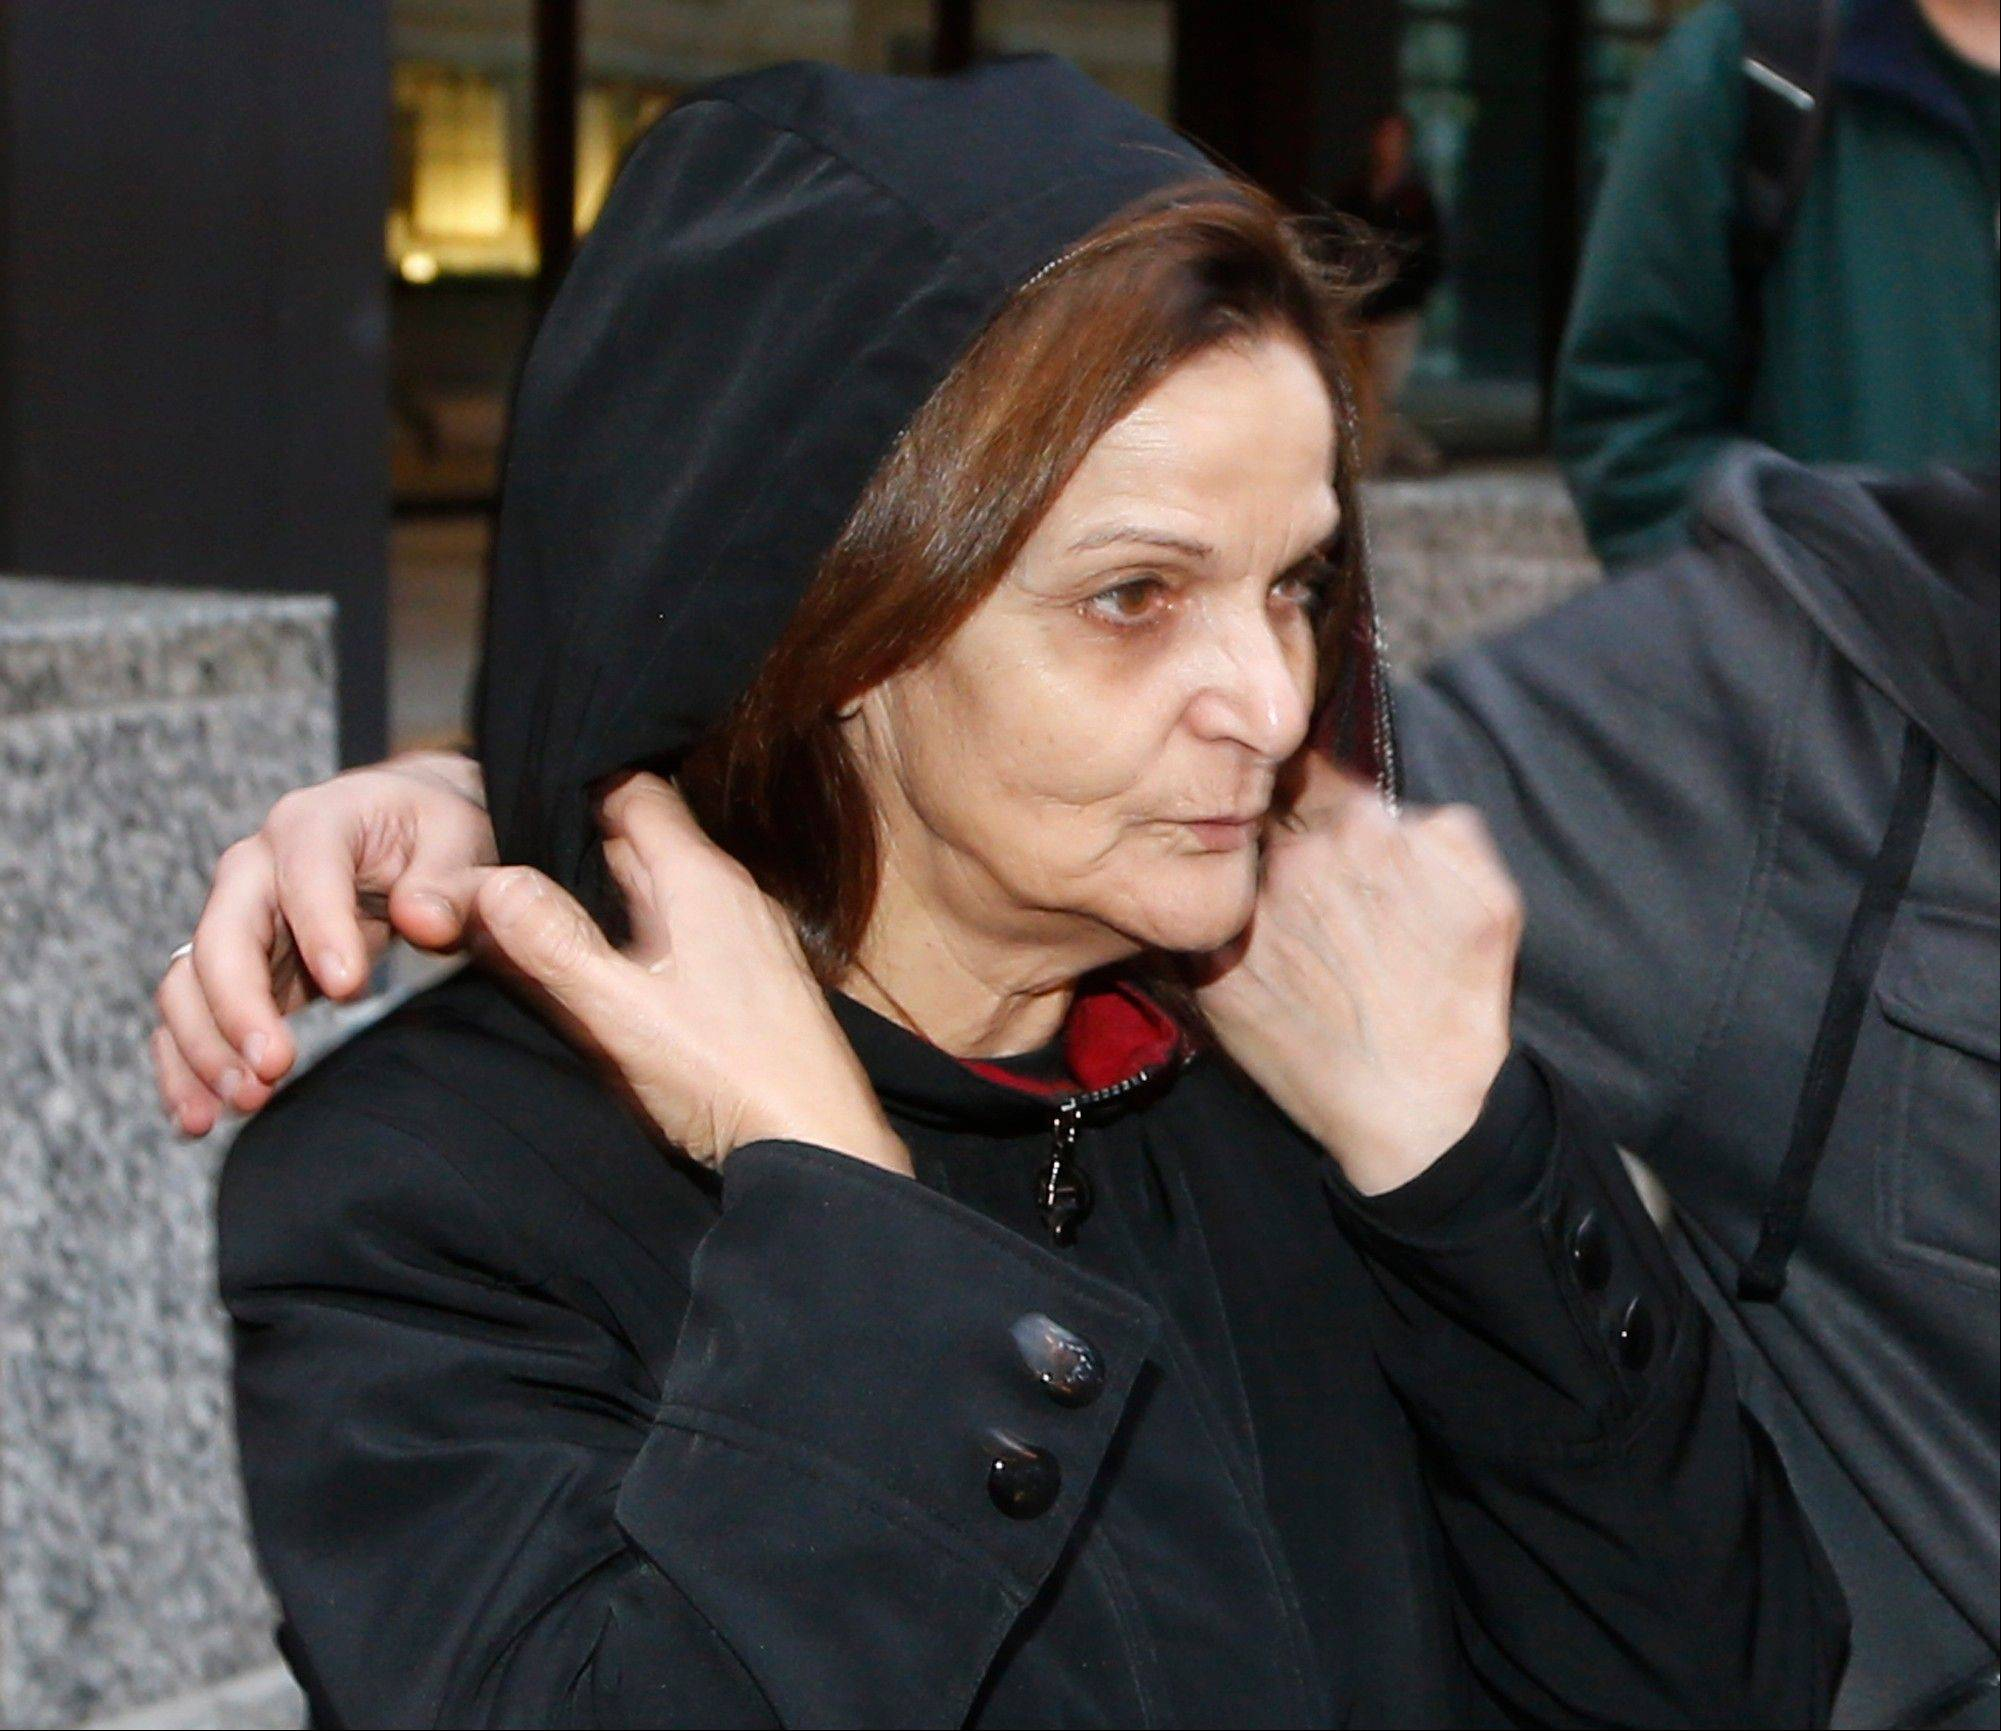 Rasmieh Yousef Odeh is accused of lying about her conviction for a deadly bombing in Israel when she immigrated to the United States.